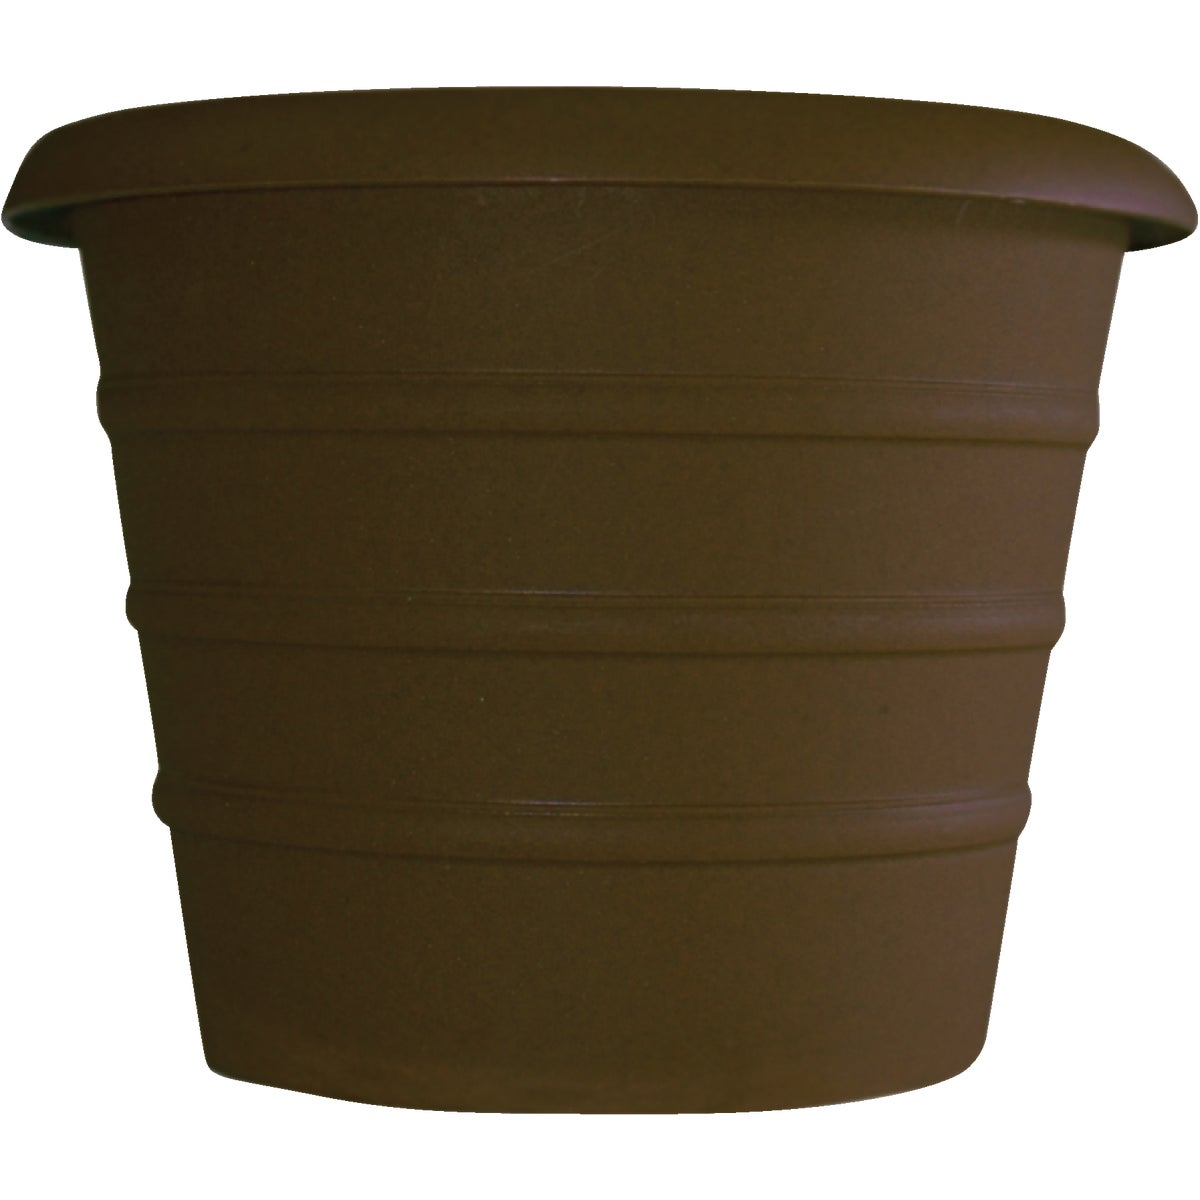 "6"" CHOC SELF WATER POT"